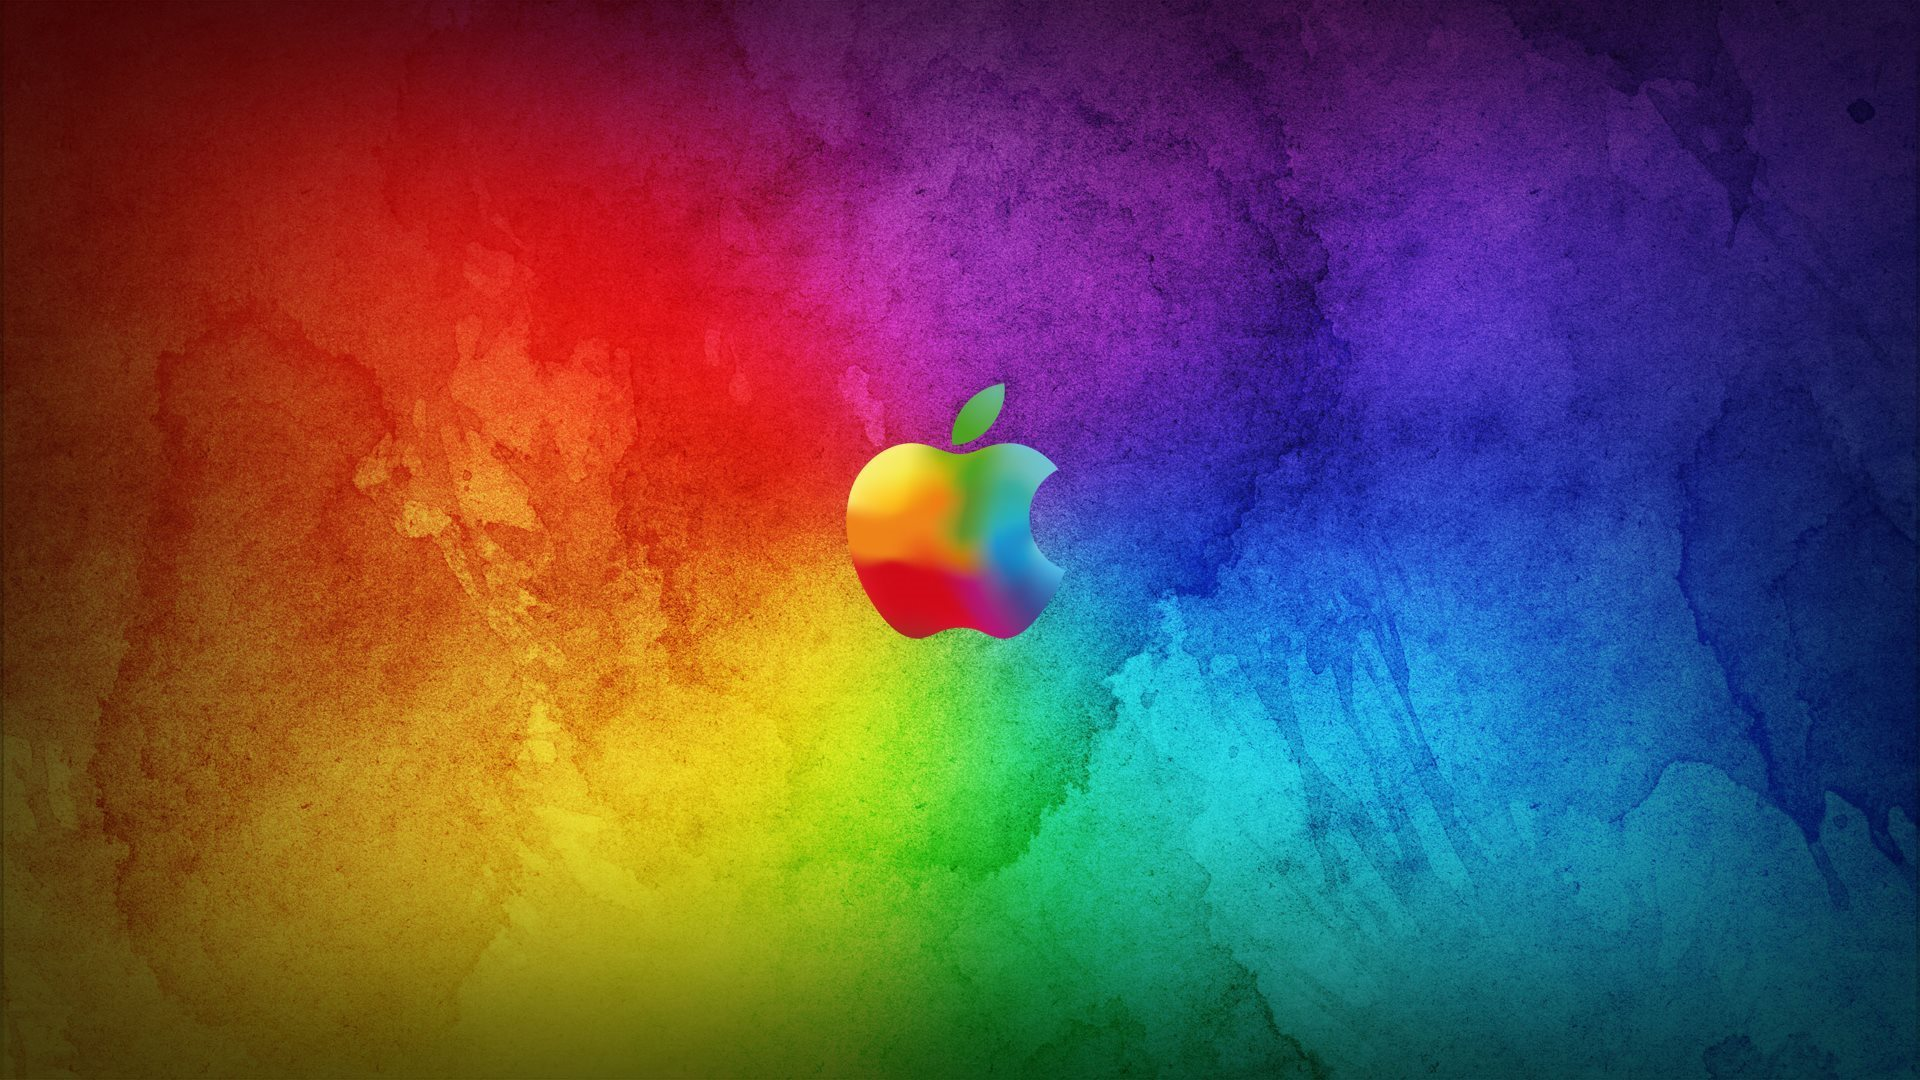 Apple Logo Wallpapers Desktop HD Wallpaper of Logo   hdwallpaper2013 1920x1080